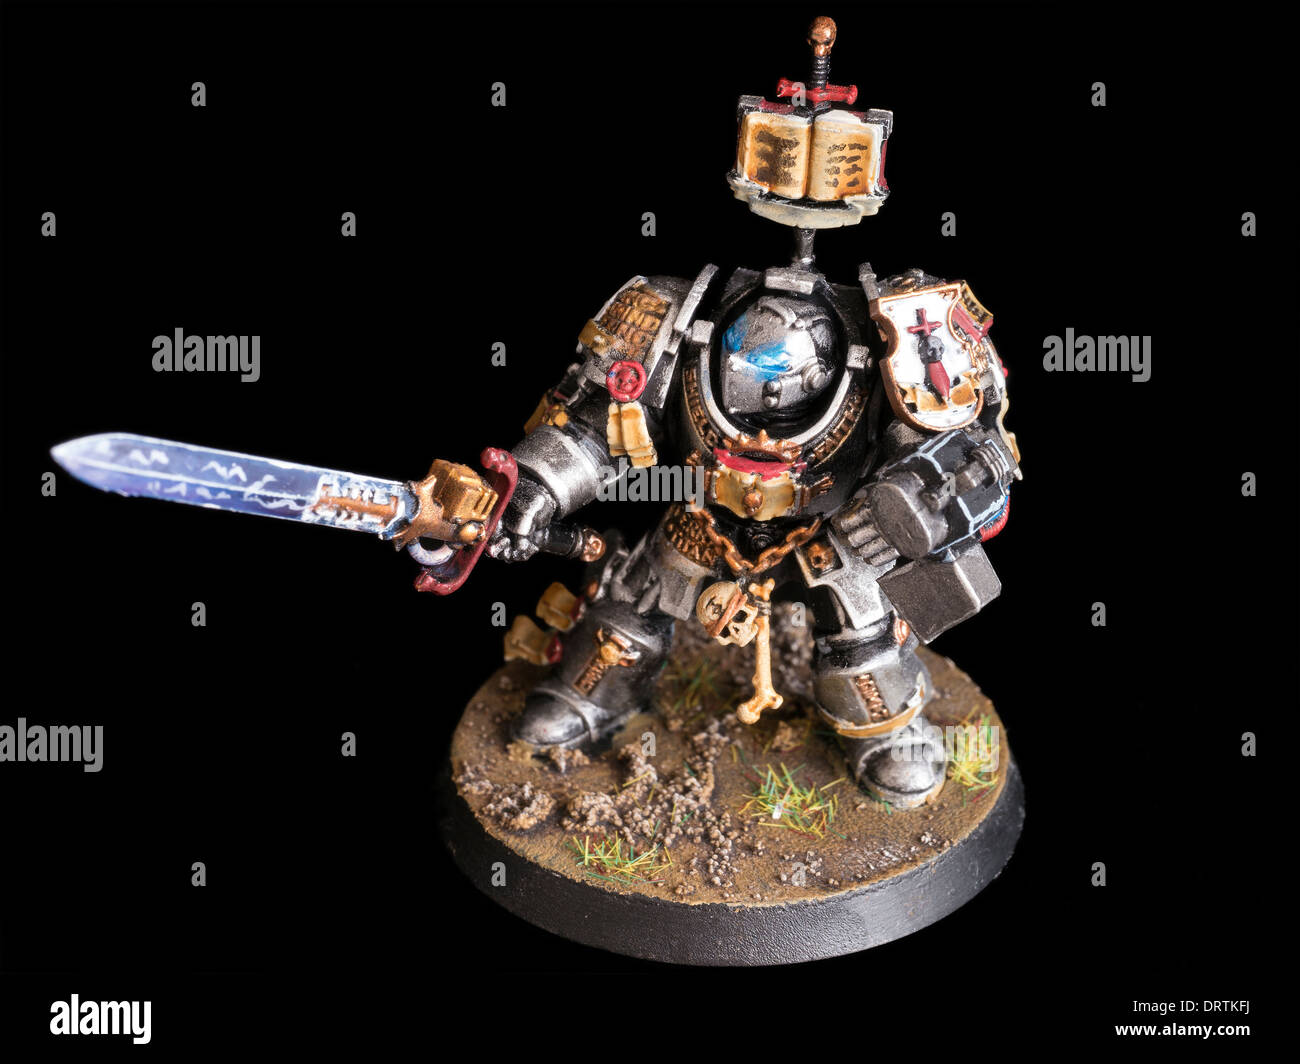 Games workshop colorado - Grey Knight Terminator Games Workshop Hand Painted Warhammer 40 000 Miniature Figure Stock Image